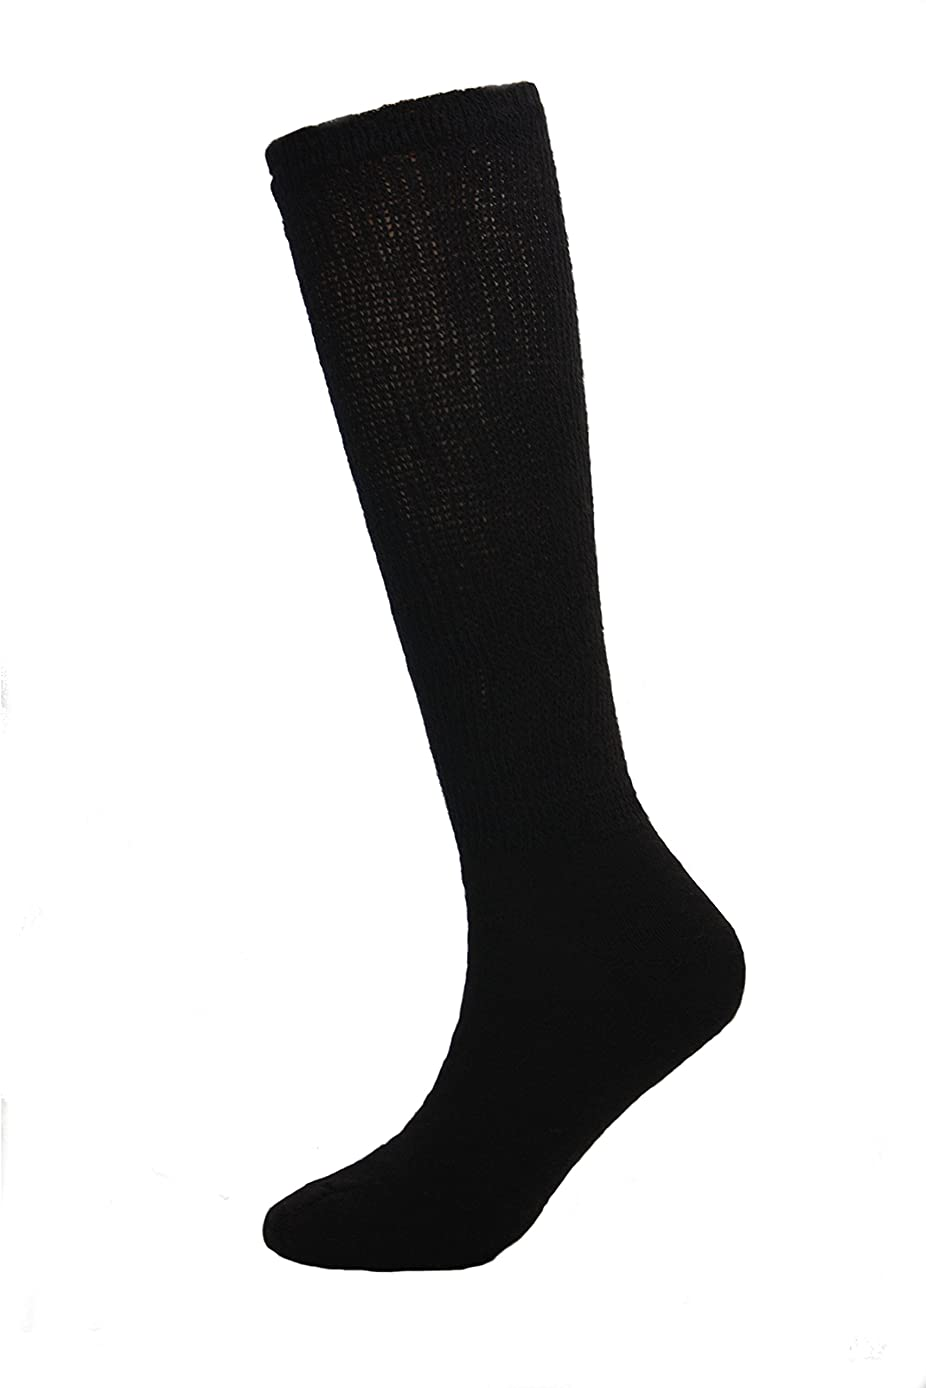 Sole Pleasers Men's Diabetic Over the Calf Socks - 3 Pairs